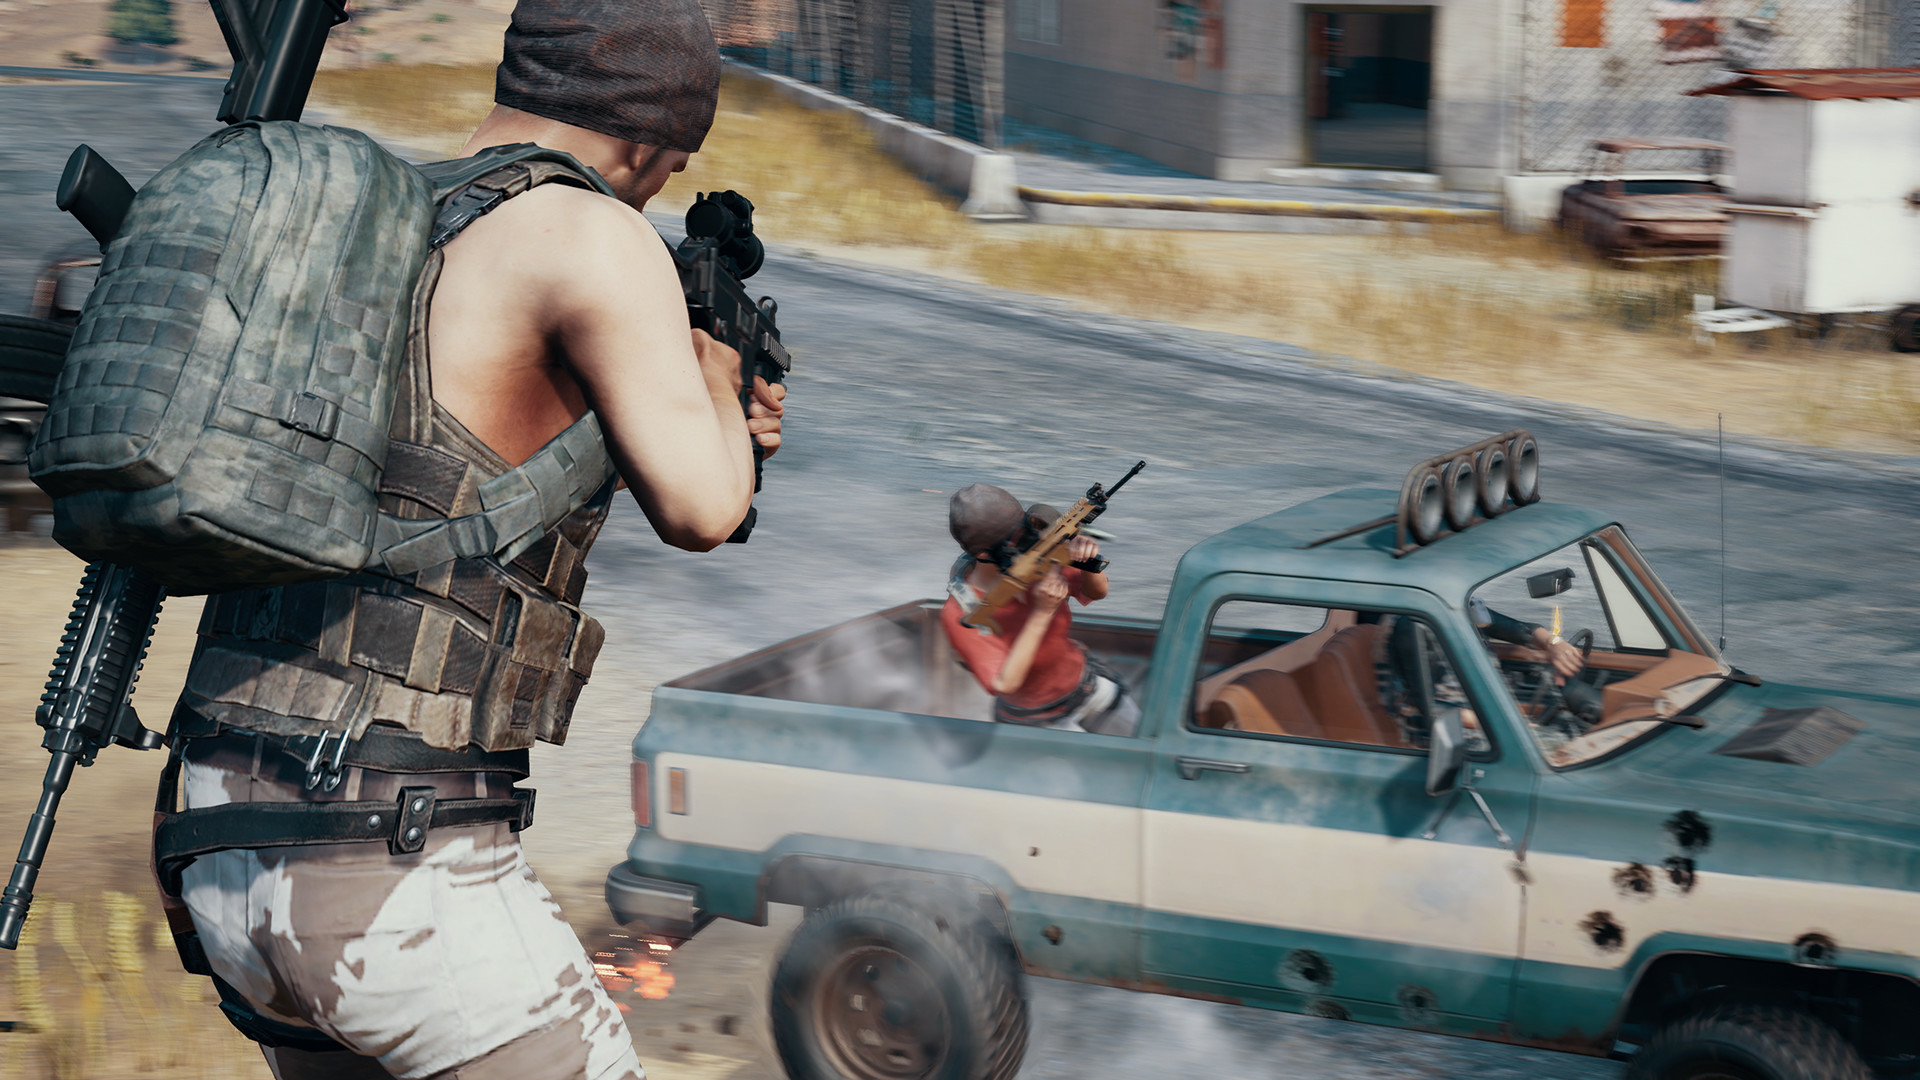 PLAYERUNKNOWNS BATTLEGROUNDS (Region Free) PUBG account